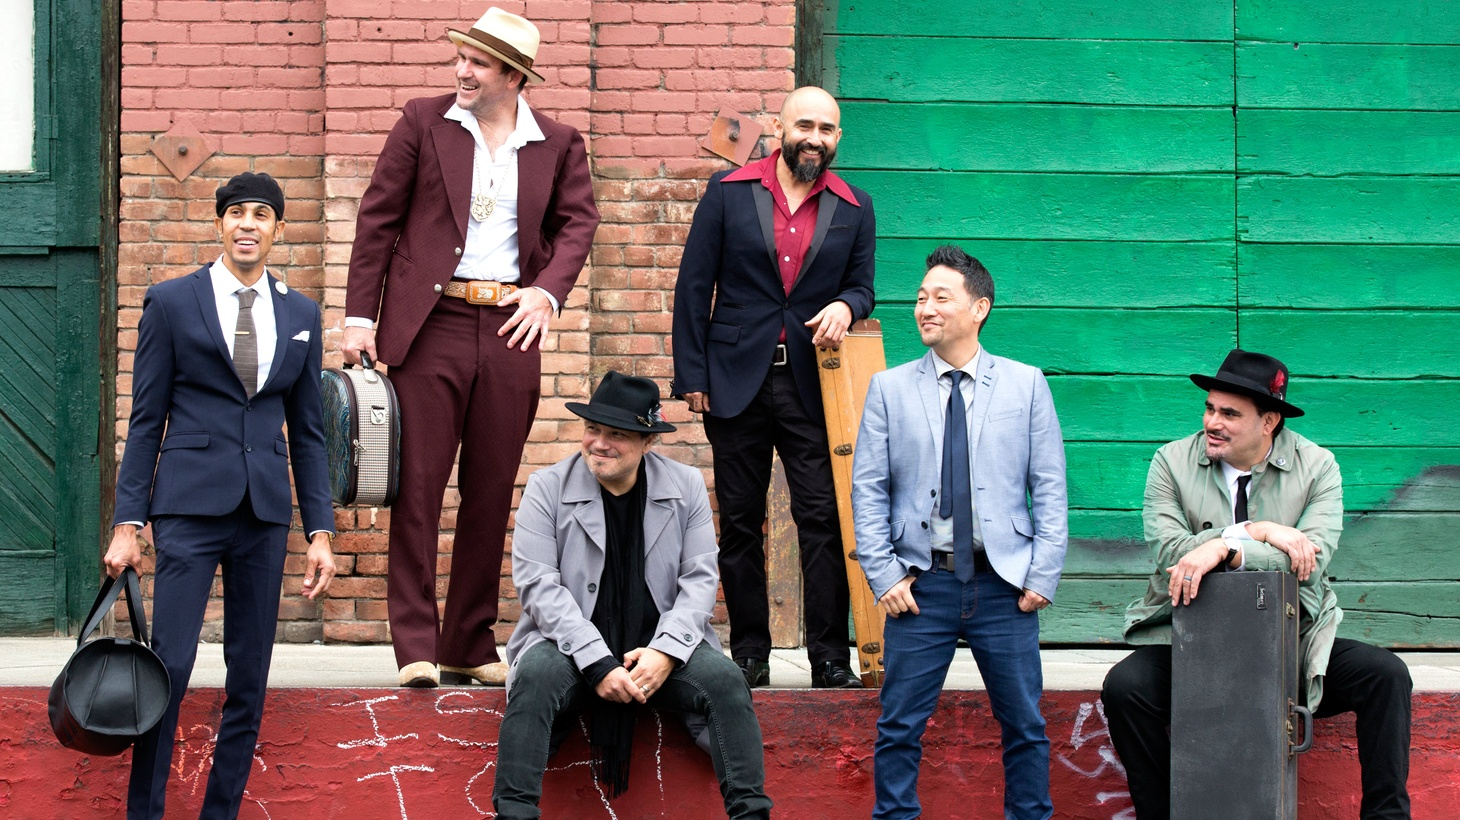 """Honoring its 21st anniversary, Ozomatli cover hits from the classic songbook of Mexico with songs like """"Bésame Mucho"""" and invites artists like Herb Albert, Juanes and Gaby Moreno to record with them."""